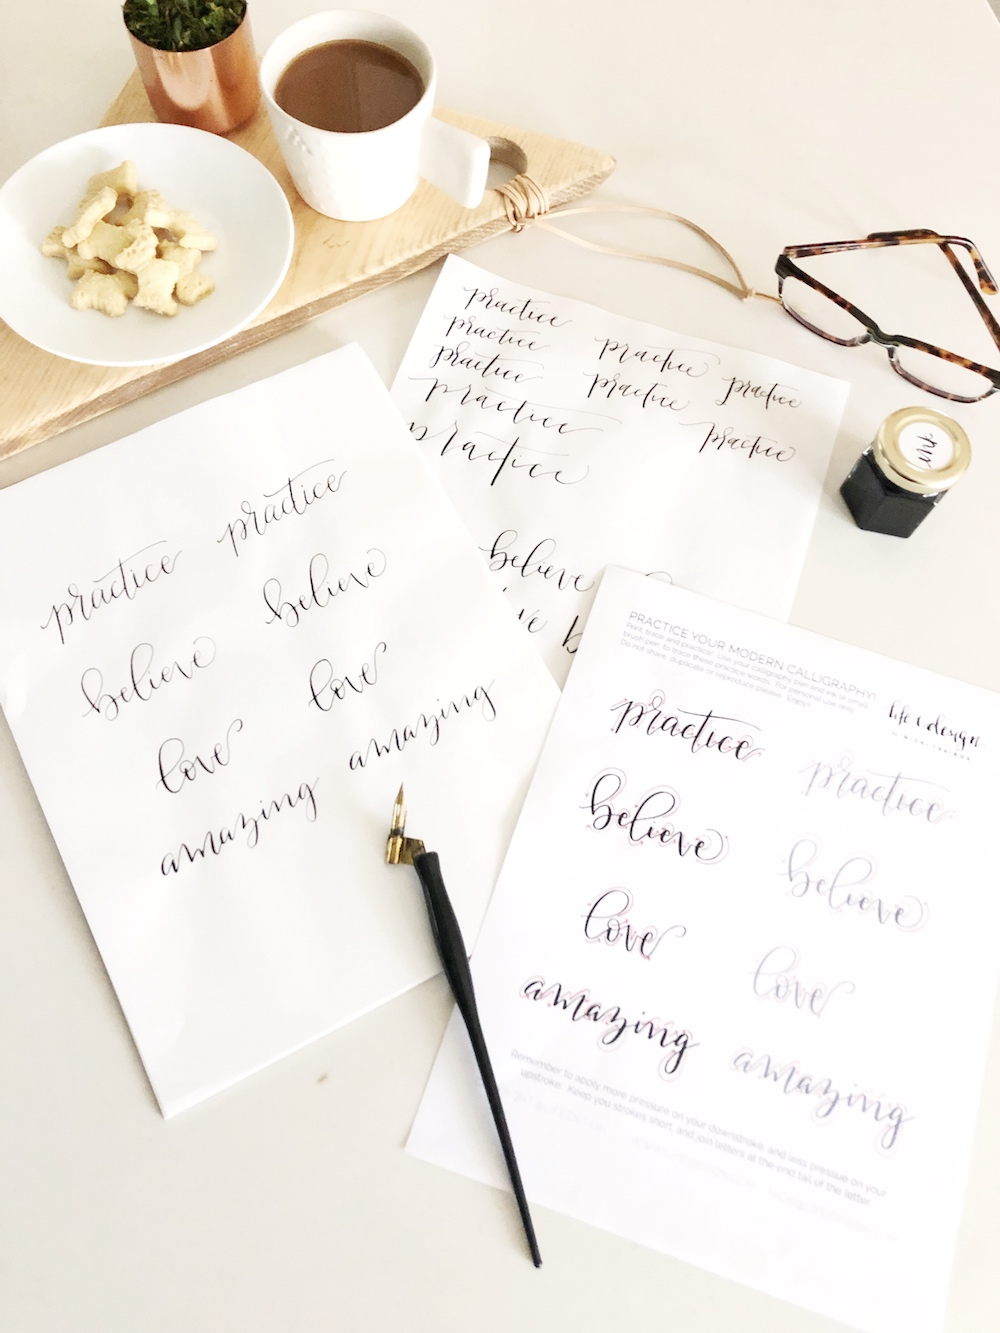 Free printable practice sheet to help you with some fun words to letter in calligraphy.